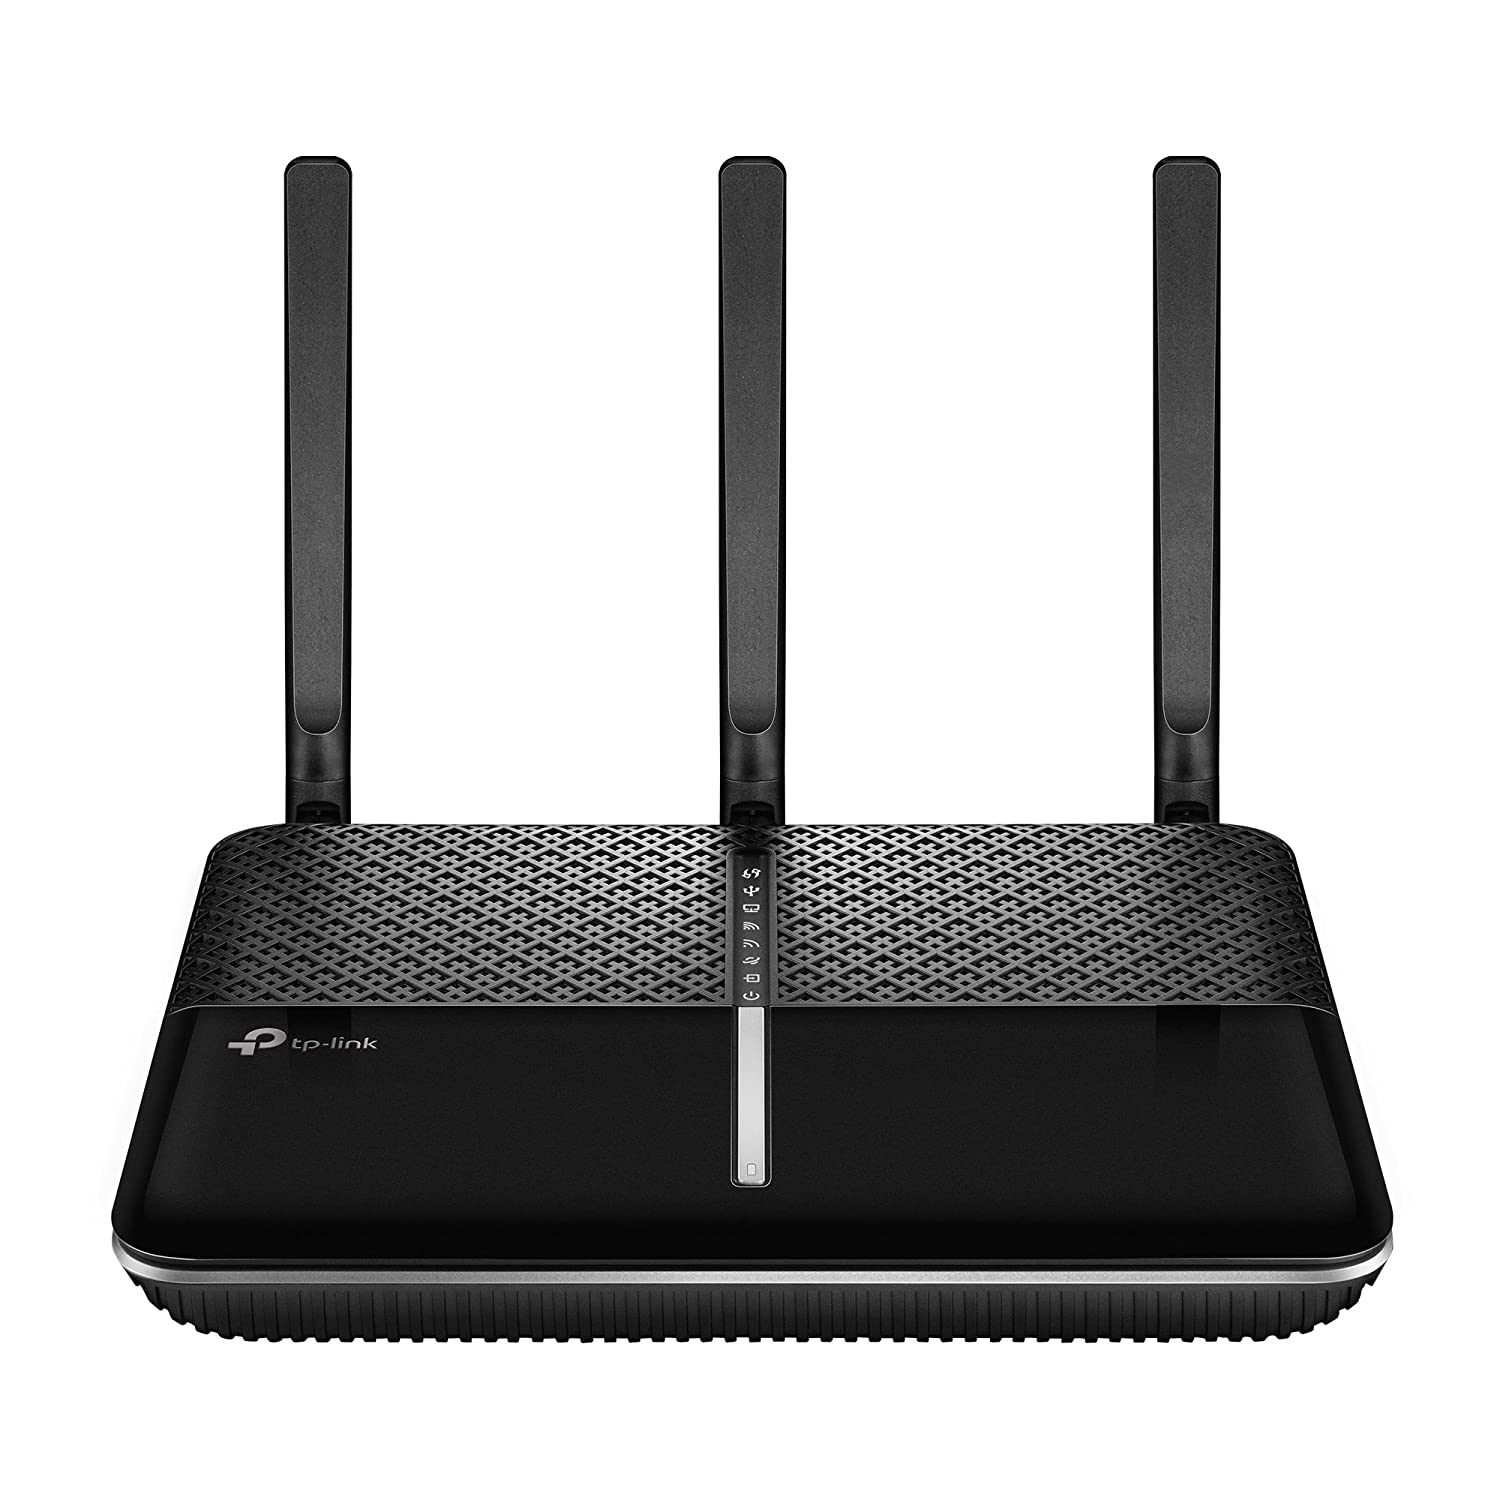 TP-LINK AC1600 Wireless Dual Band Gigabit VDSL/ADSL Modem Router for Phone  Line Connections (BT Infinity, TalkTalk, EE and Plusnet Fibre), 1 USB 2 0